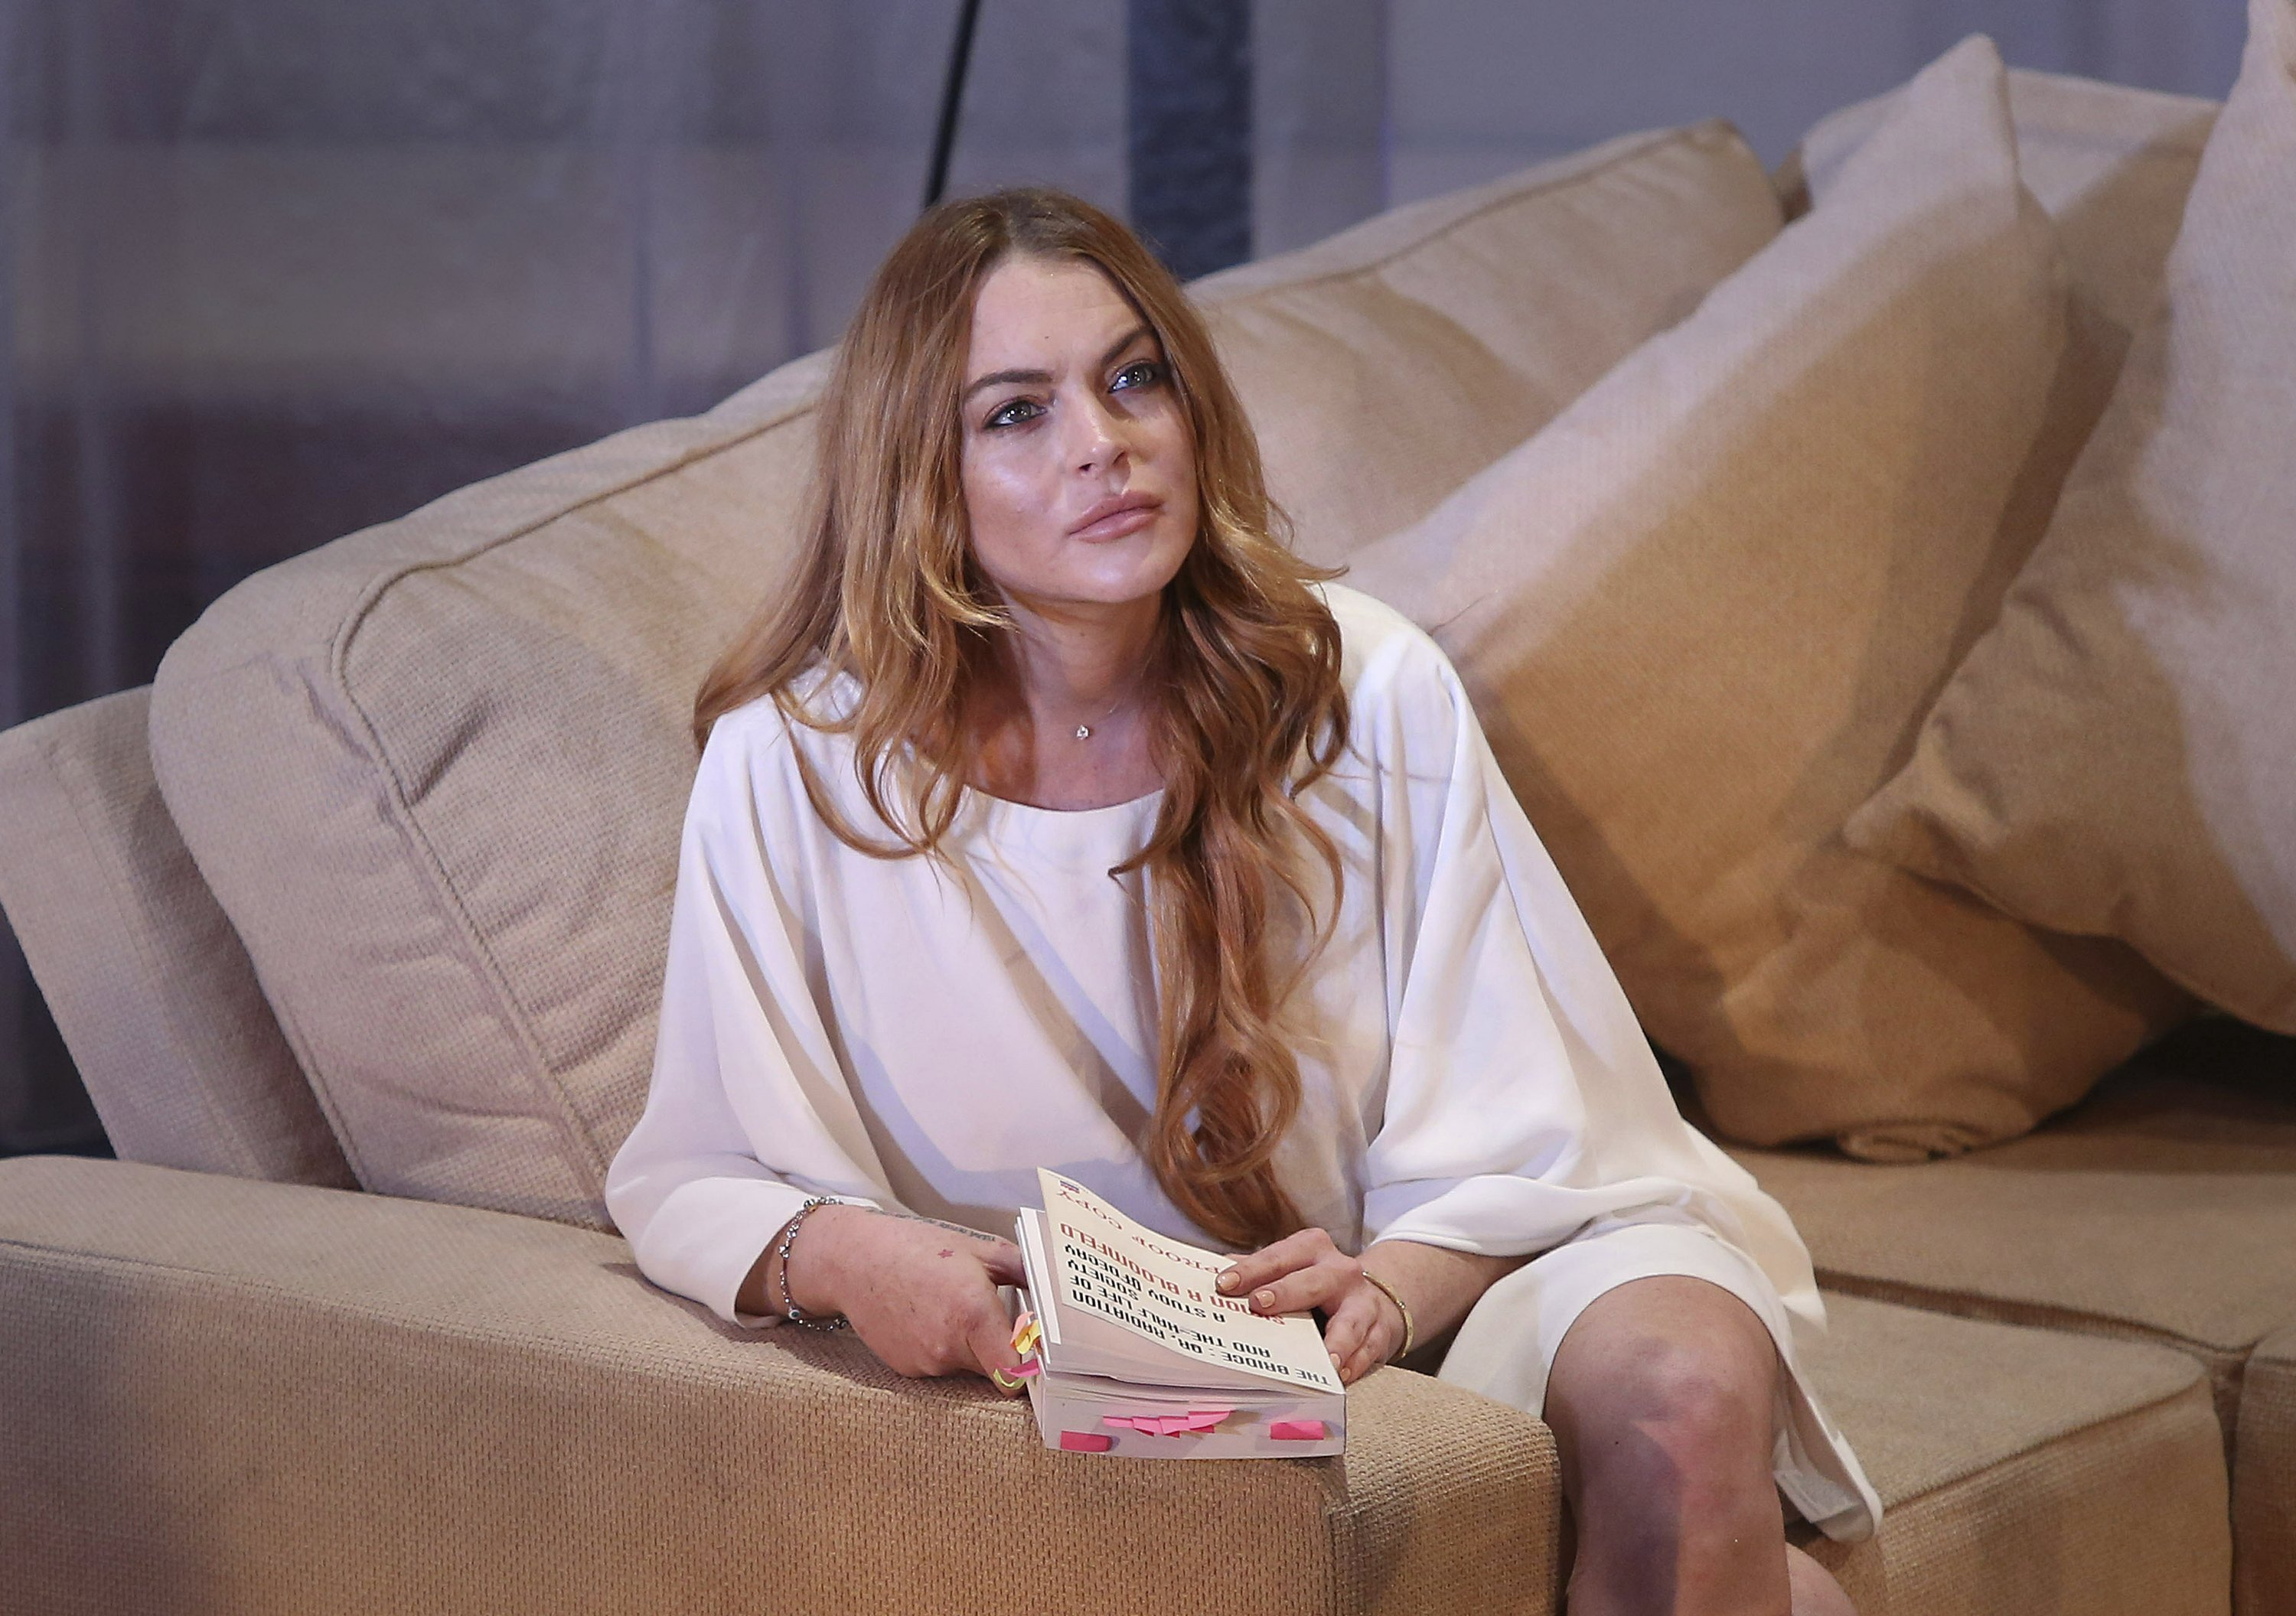 Lindsay Lohan: Support Trump, would be 'a positive thing'